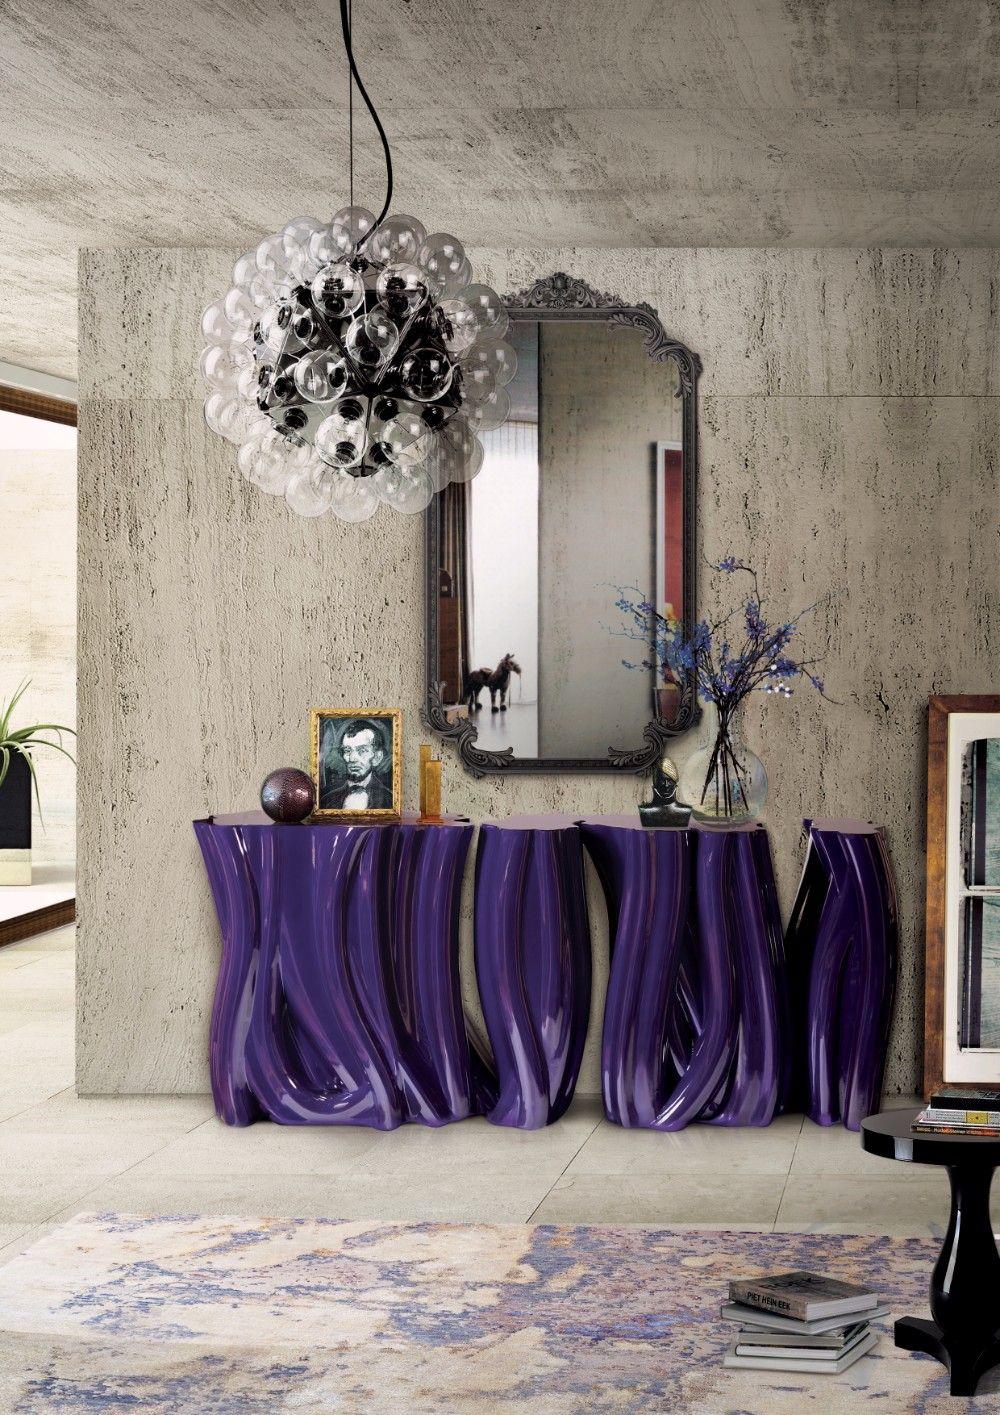 wall mirror 20 Exquisite Wall Mirror Designs for Your Living Room monochrome